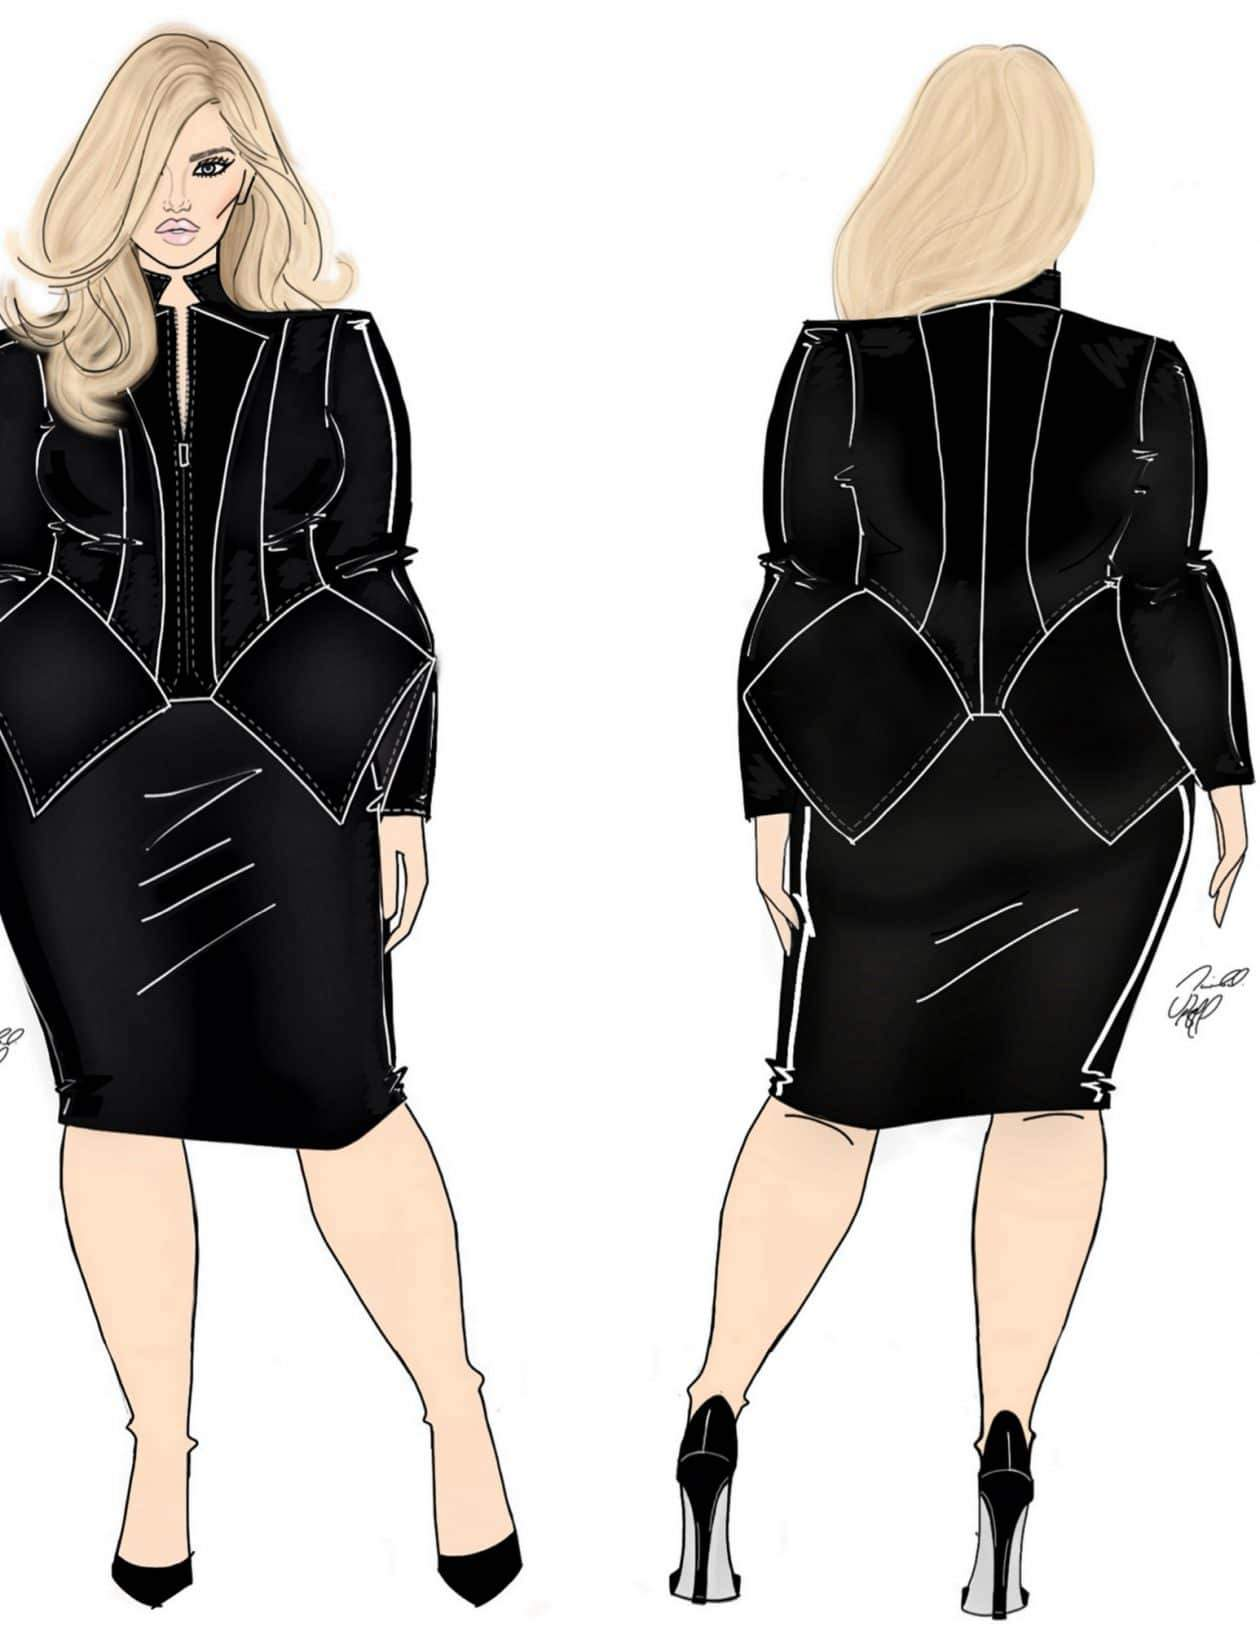 New Contemporary Plus Size Collection- Eleven60 by Kierra Sheard on The Curvy Fashionista